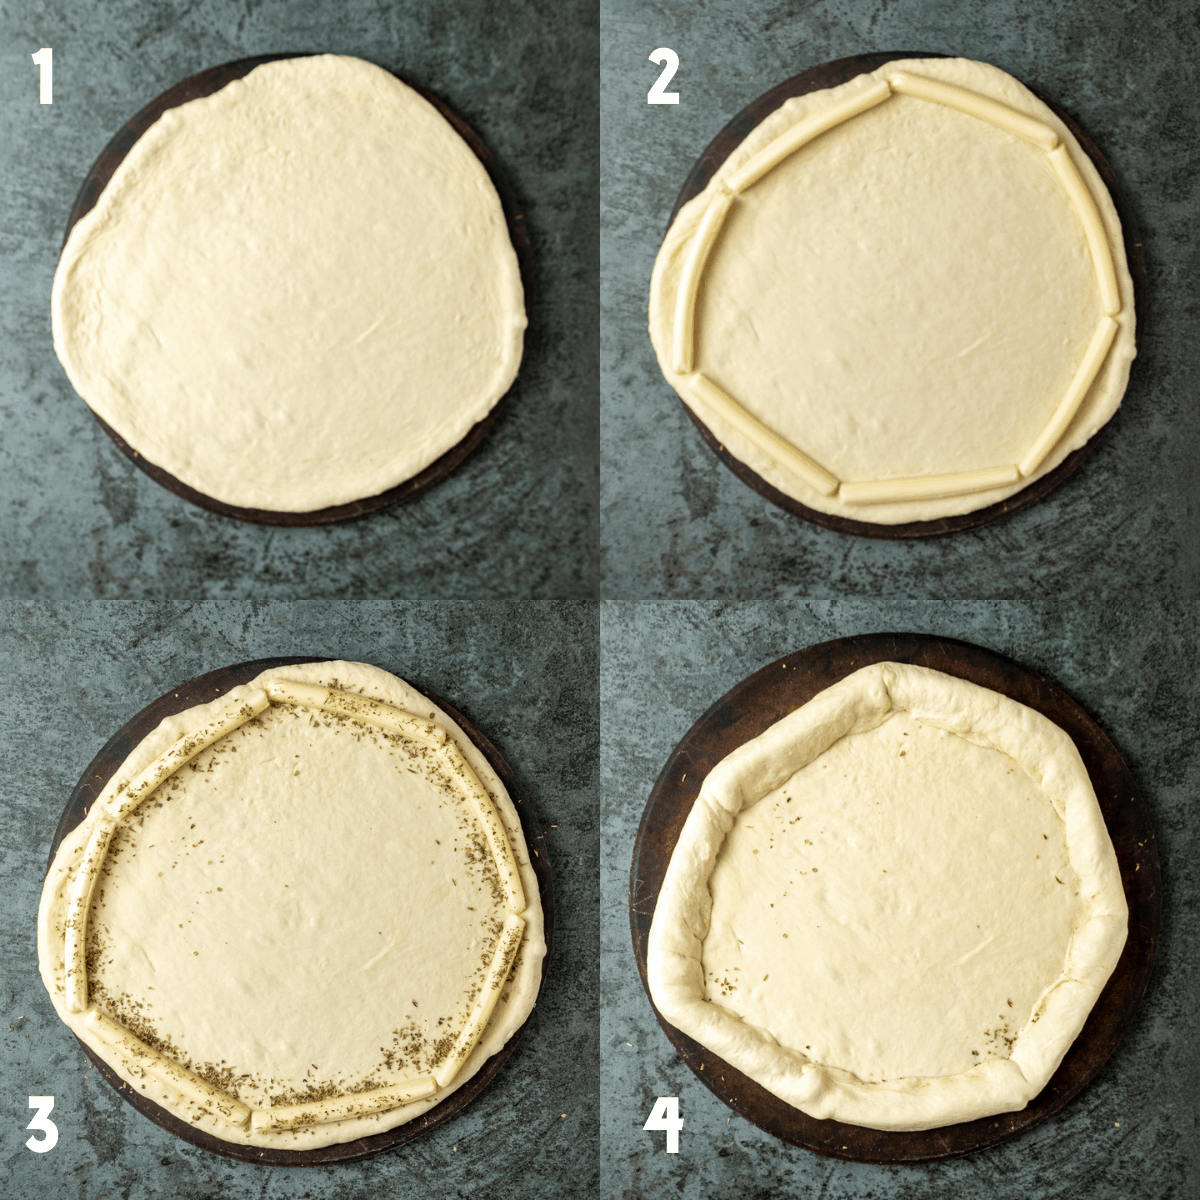 A 2x2 collage of process photos. Photo 1: A raw pizza dough rolled out thin on a pizza stone. Photo 2: A raw pizza dough rolled out thin on a pizza stone with string cheese around the edges of the crust. Photo 3: Italian seasoning sprinkled over the string cheese. Photo 4: Raw pizza dough is pulled over seasoned string cheese.